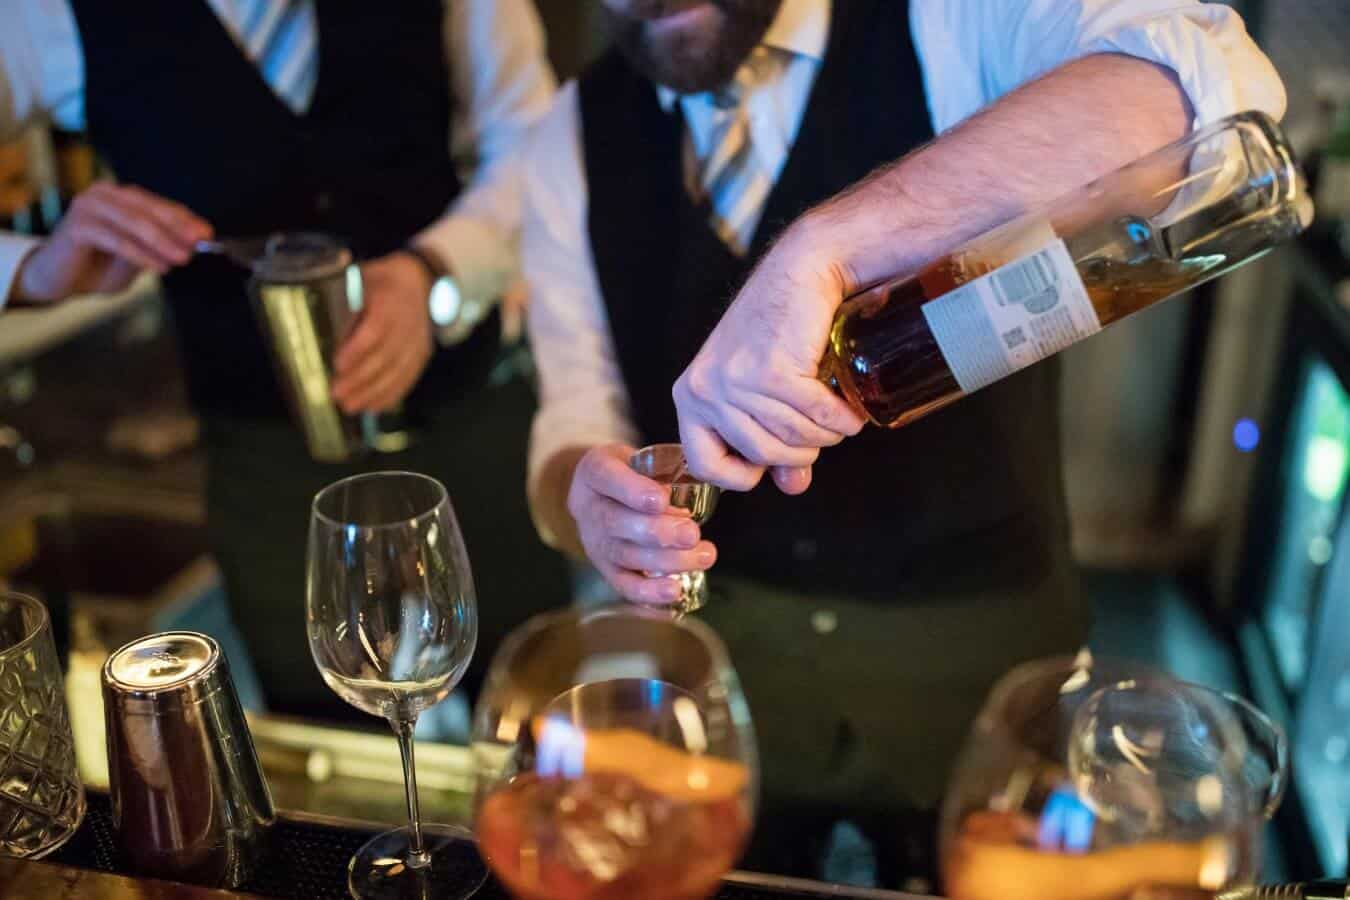 A bartender mixing a cocktails with bitters for a spirits tasting class